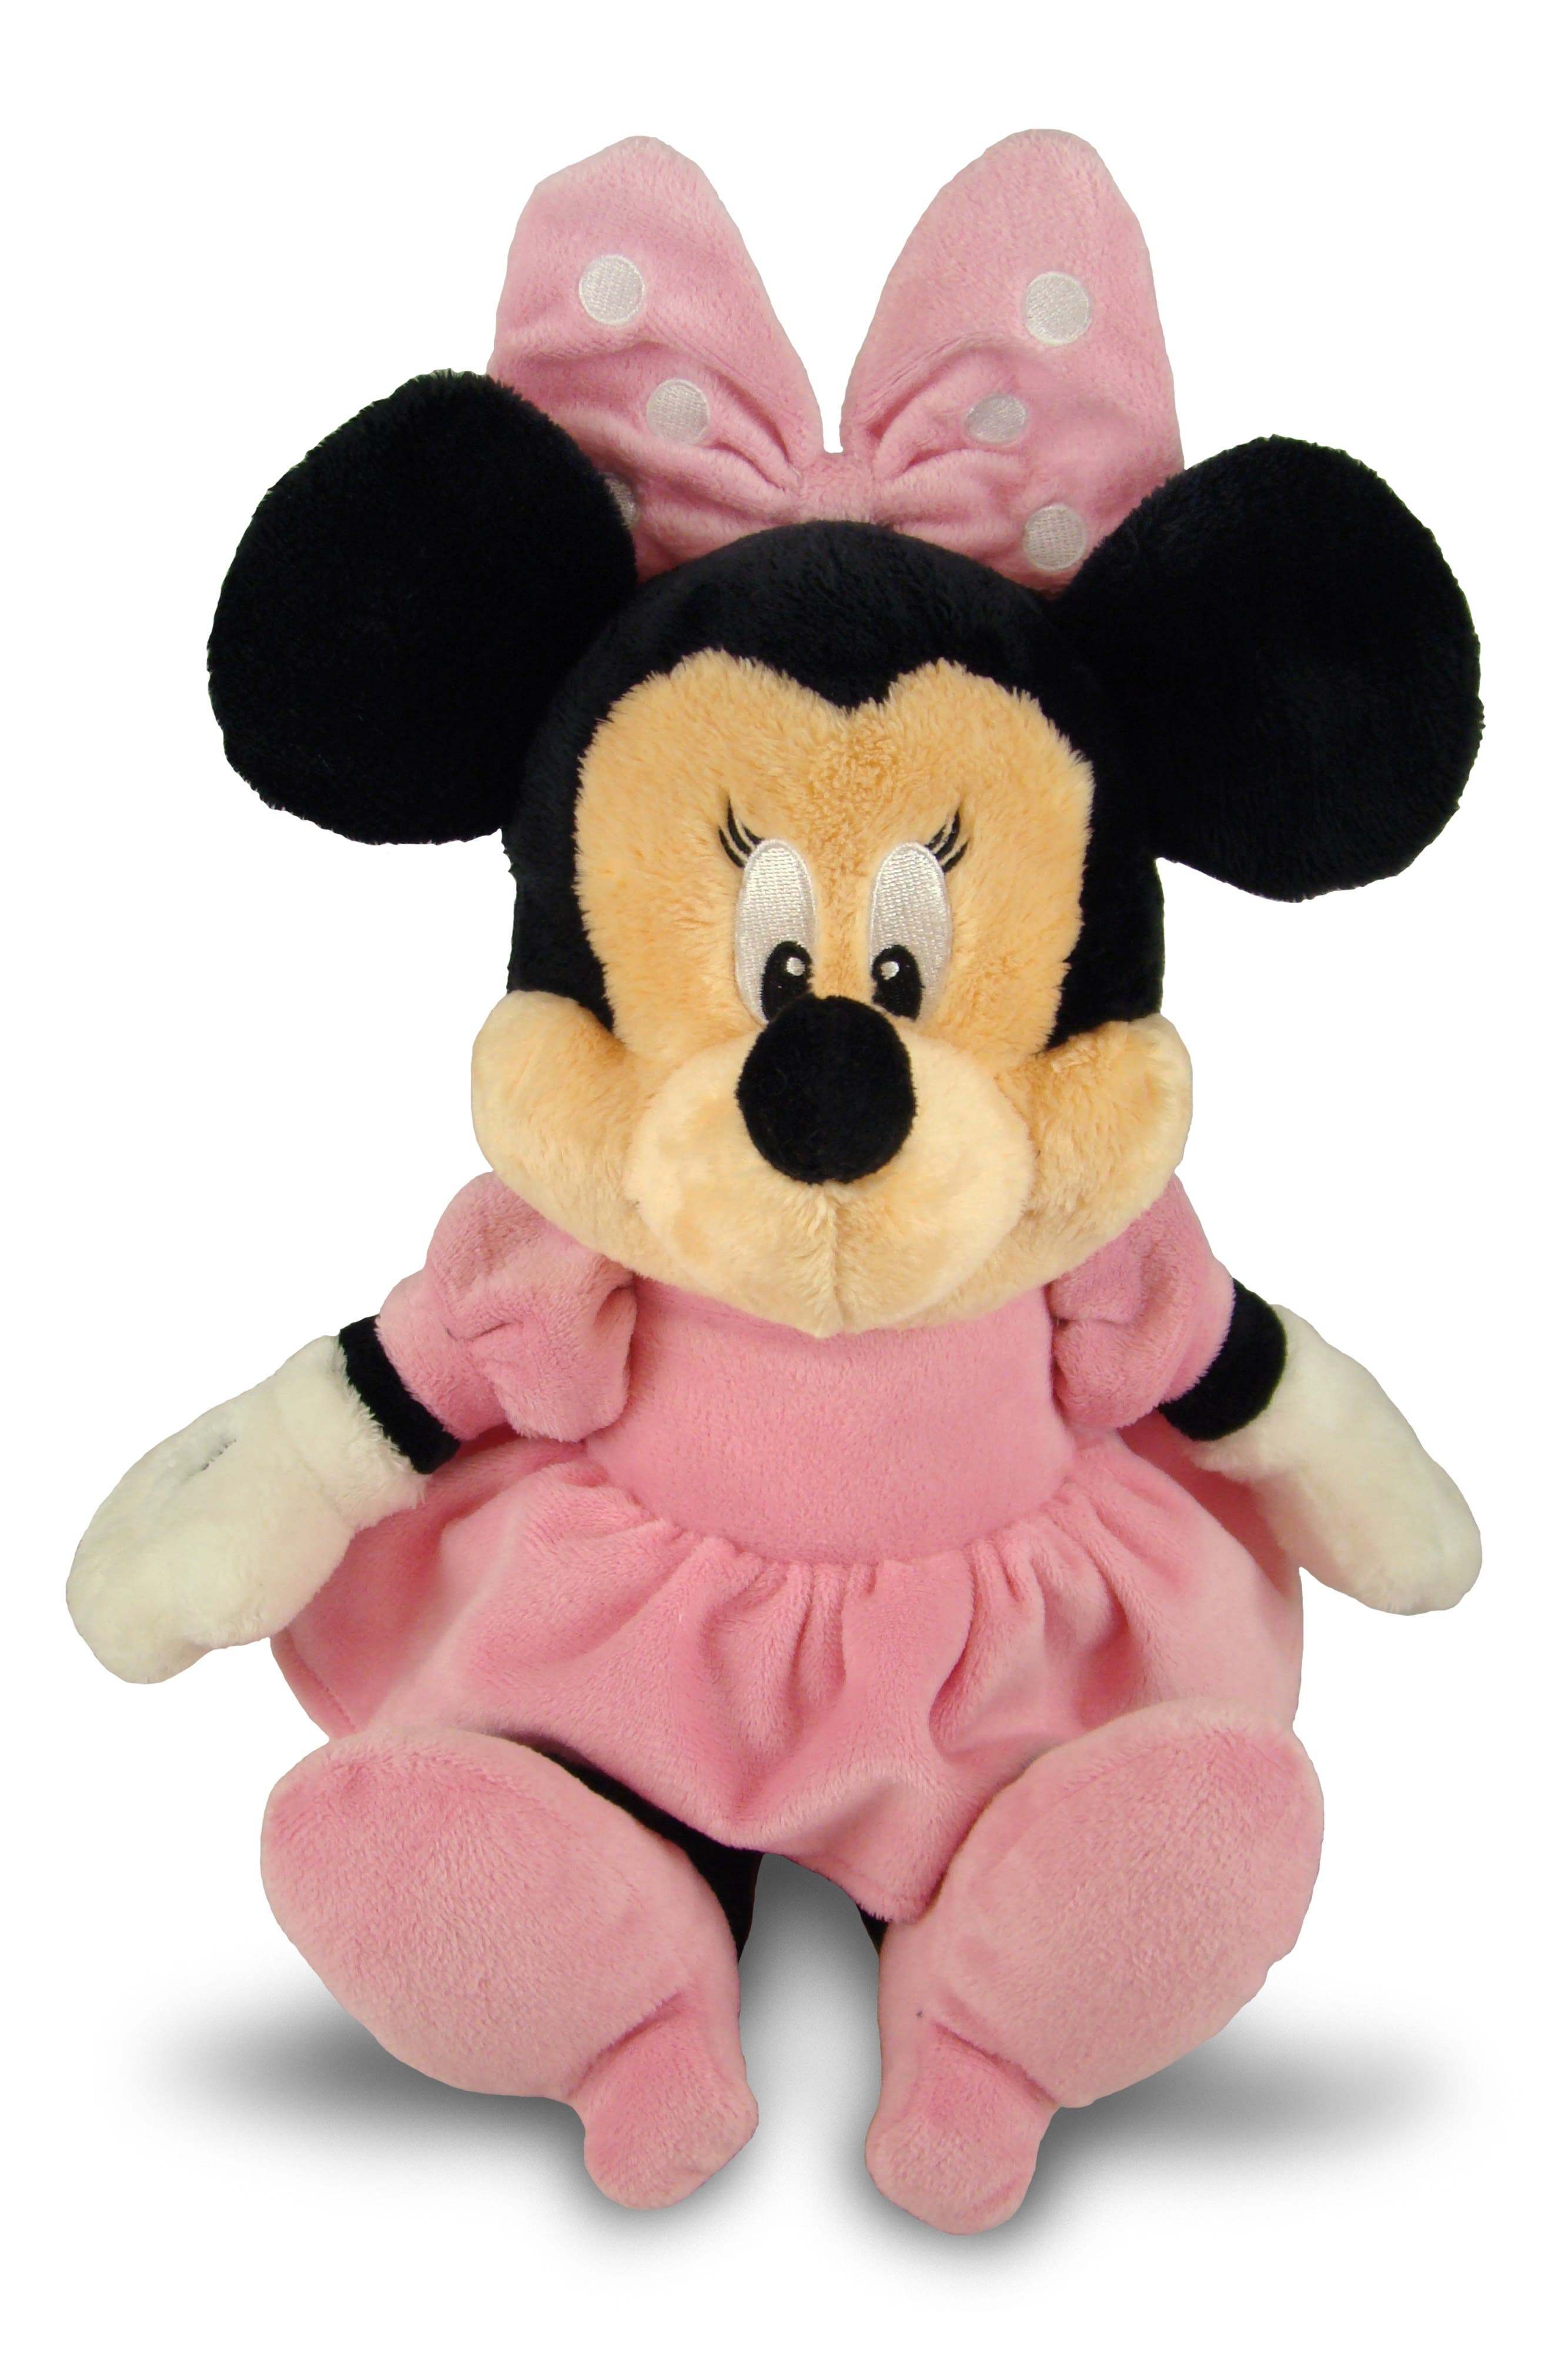 Minnie Mouse Plush Toy,                         Main,                         color, PINK